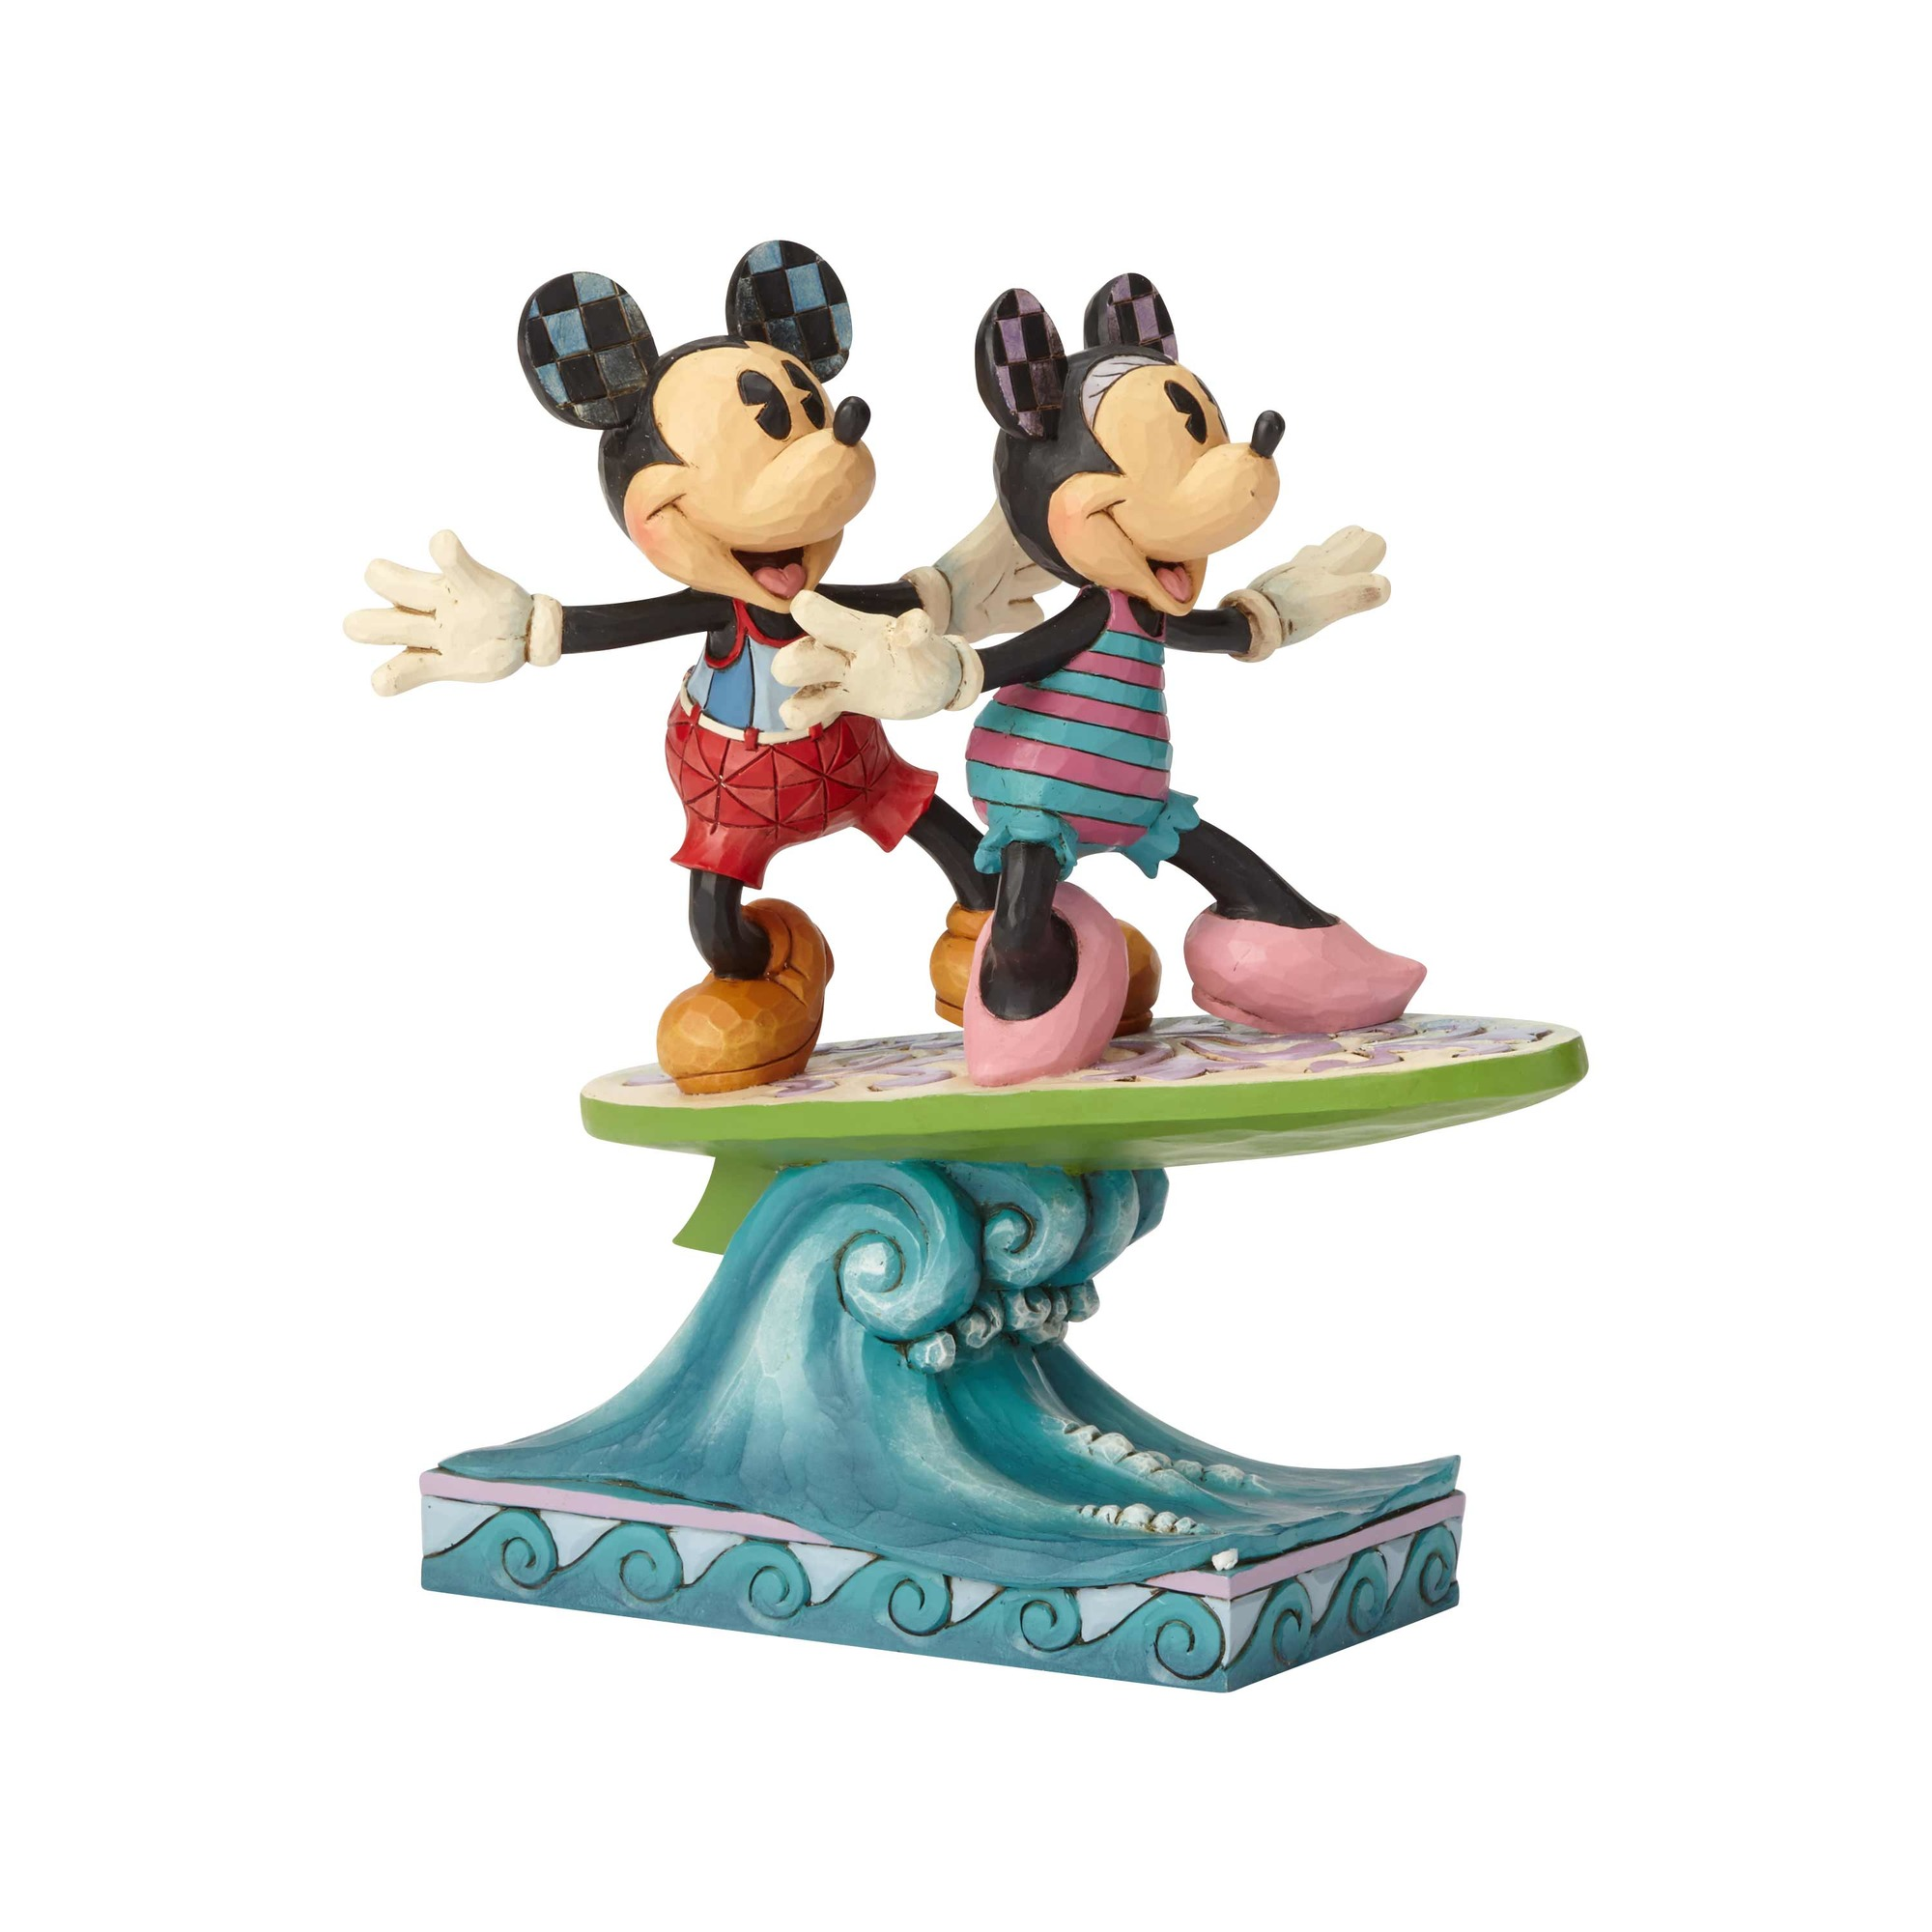 Mickey and Minnie Surfing